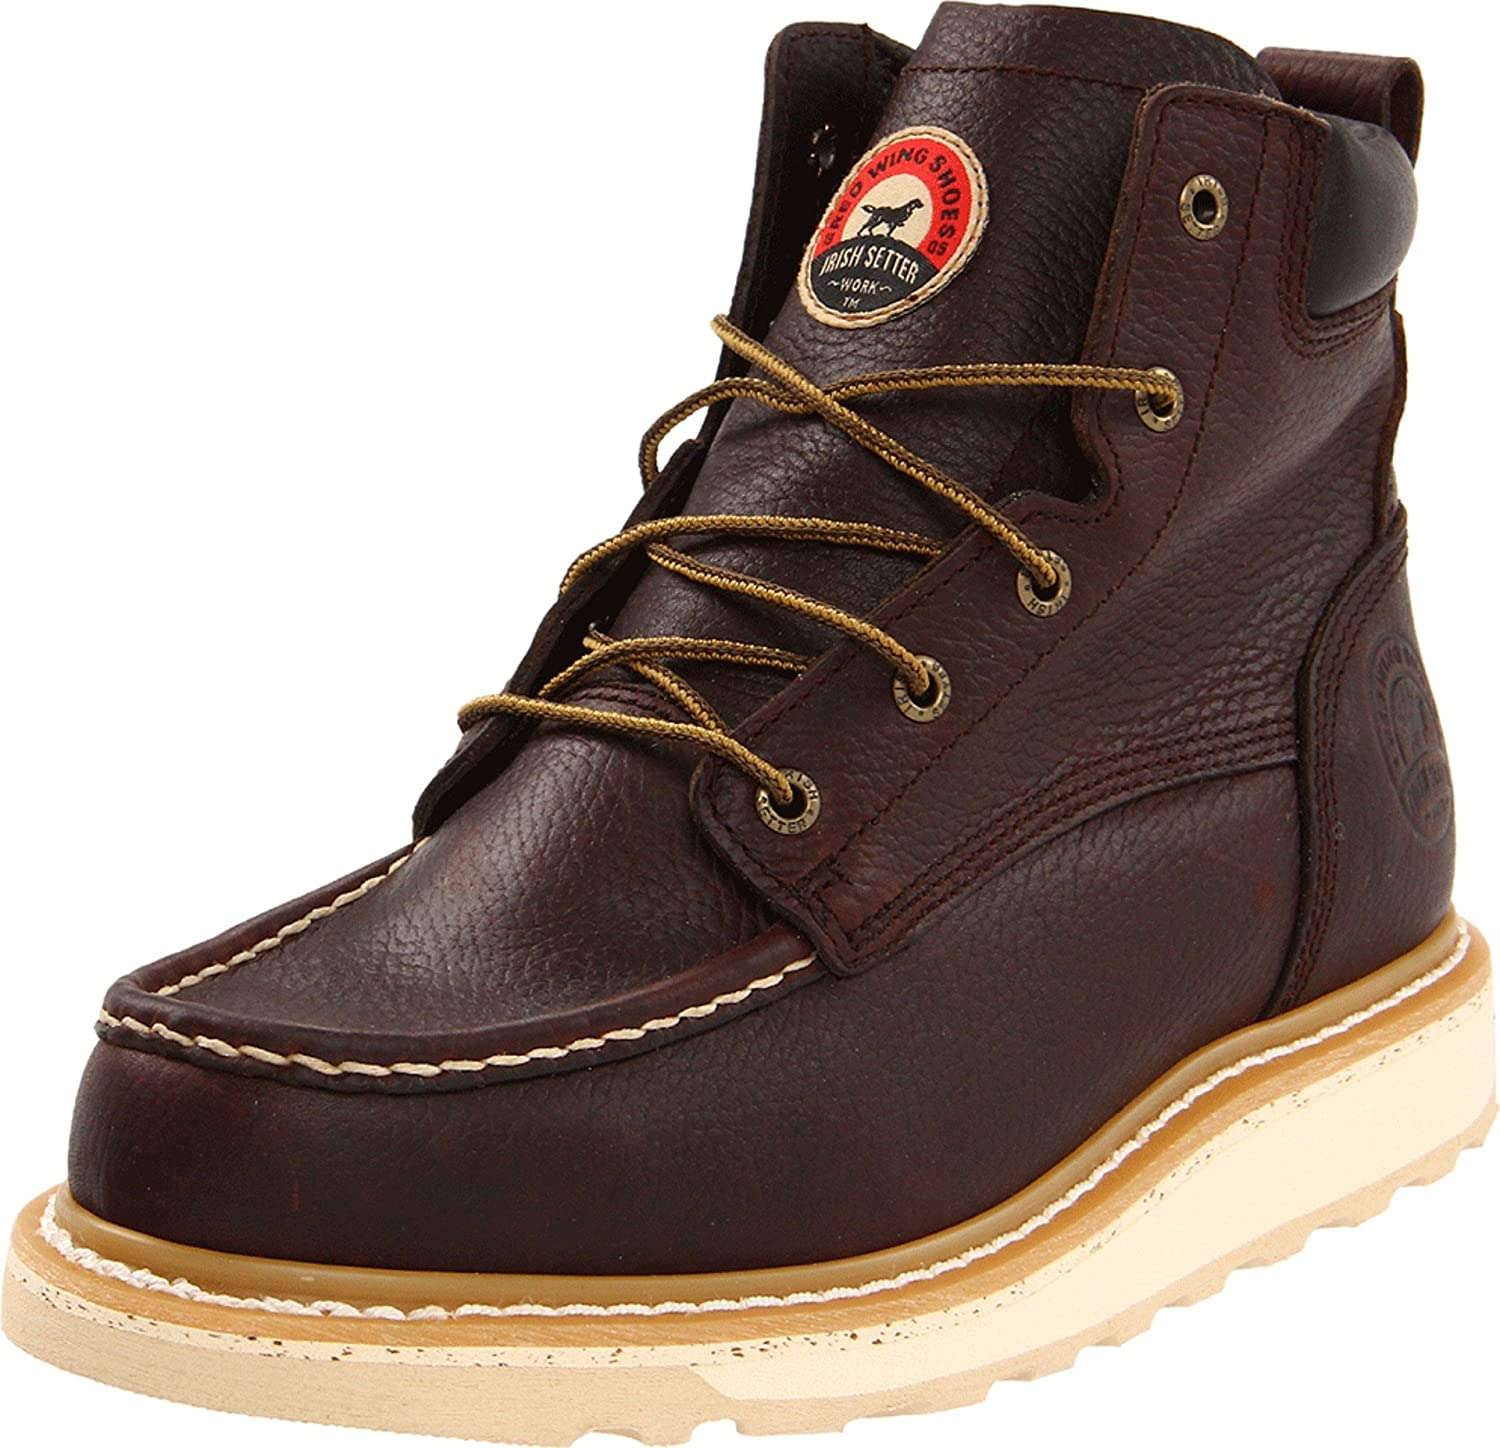 Amazon.com: Irish Setter Men&39s 83605 6&quot Work Boot: Shoes